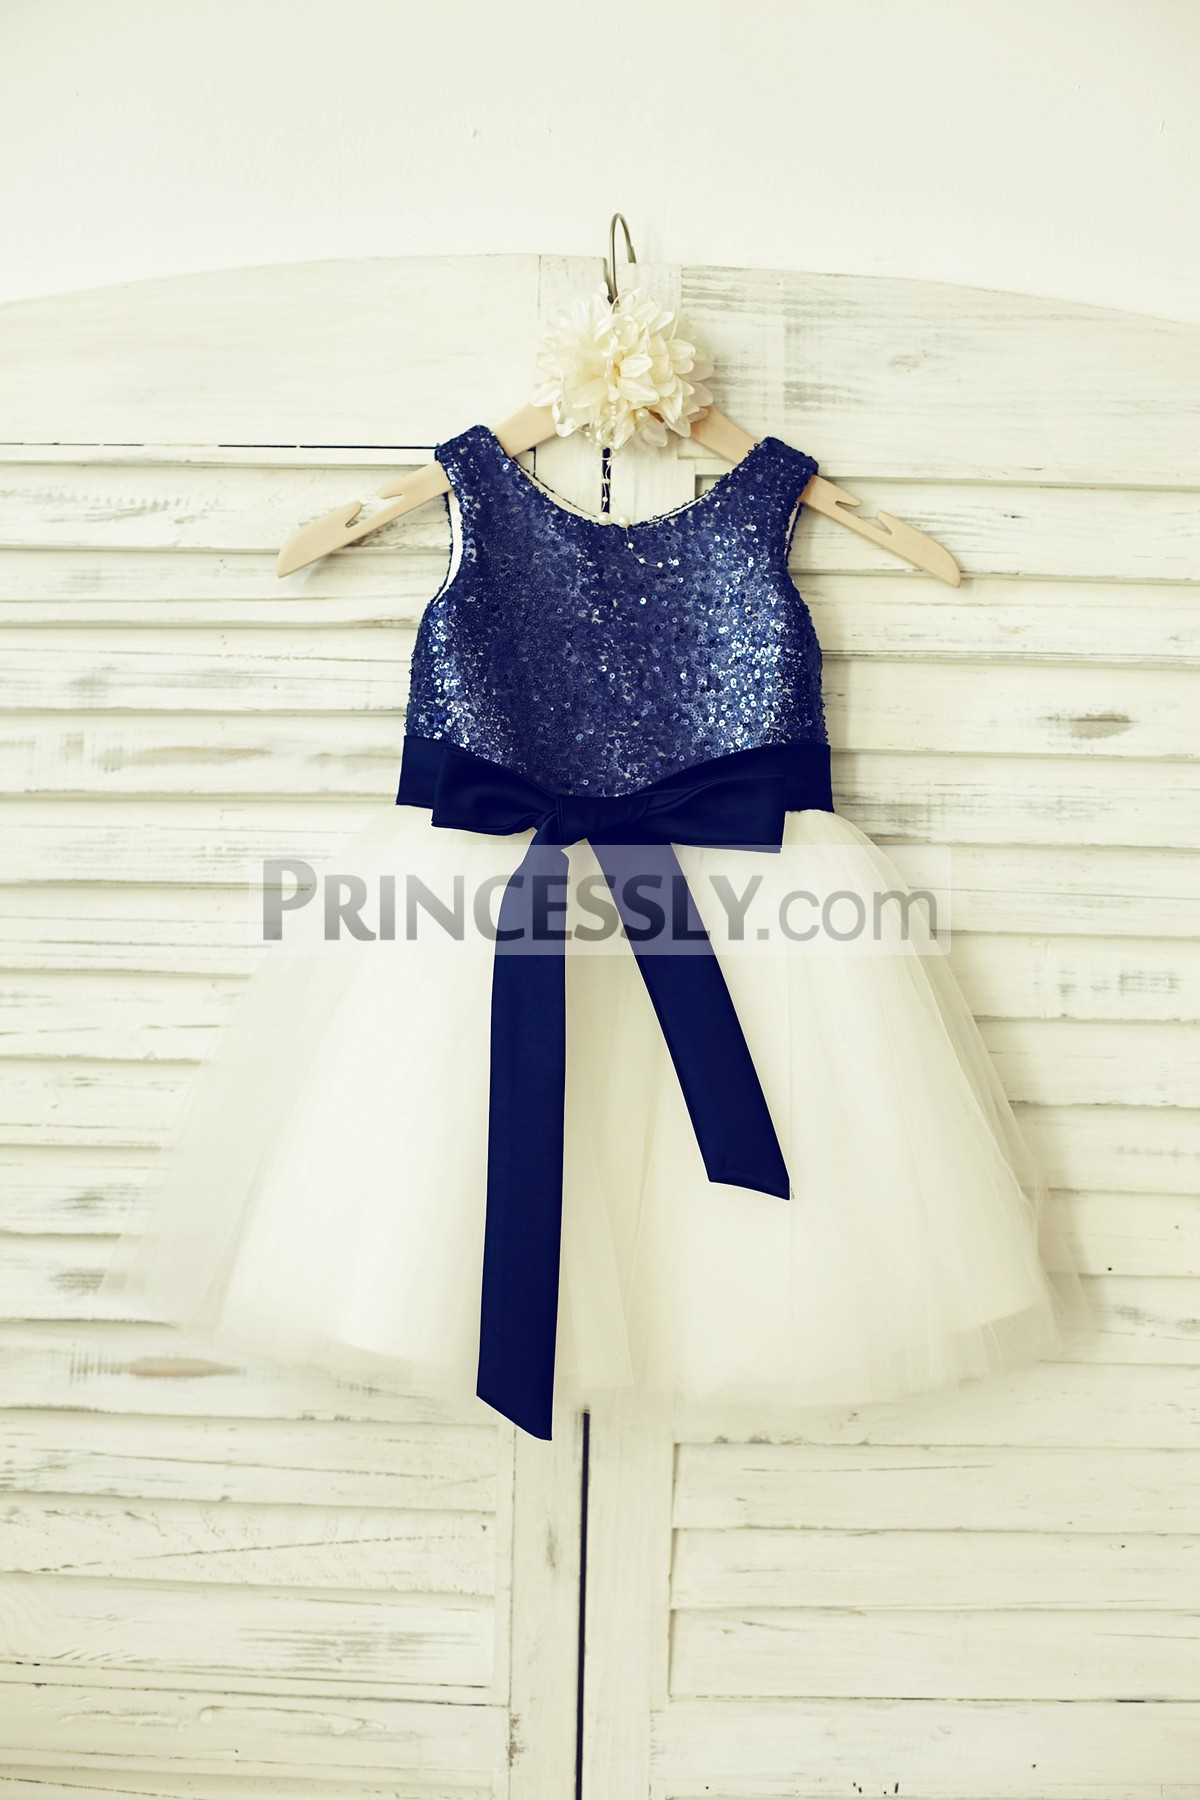 Blue sequin ivory tulle wedding baby girl dress with navy blue sash